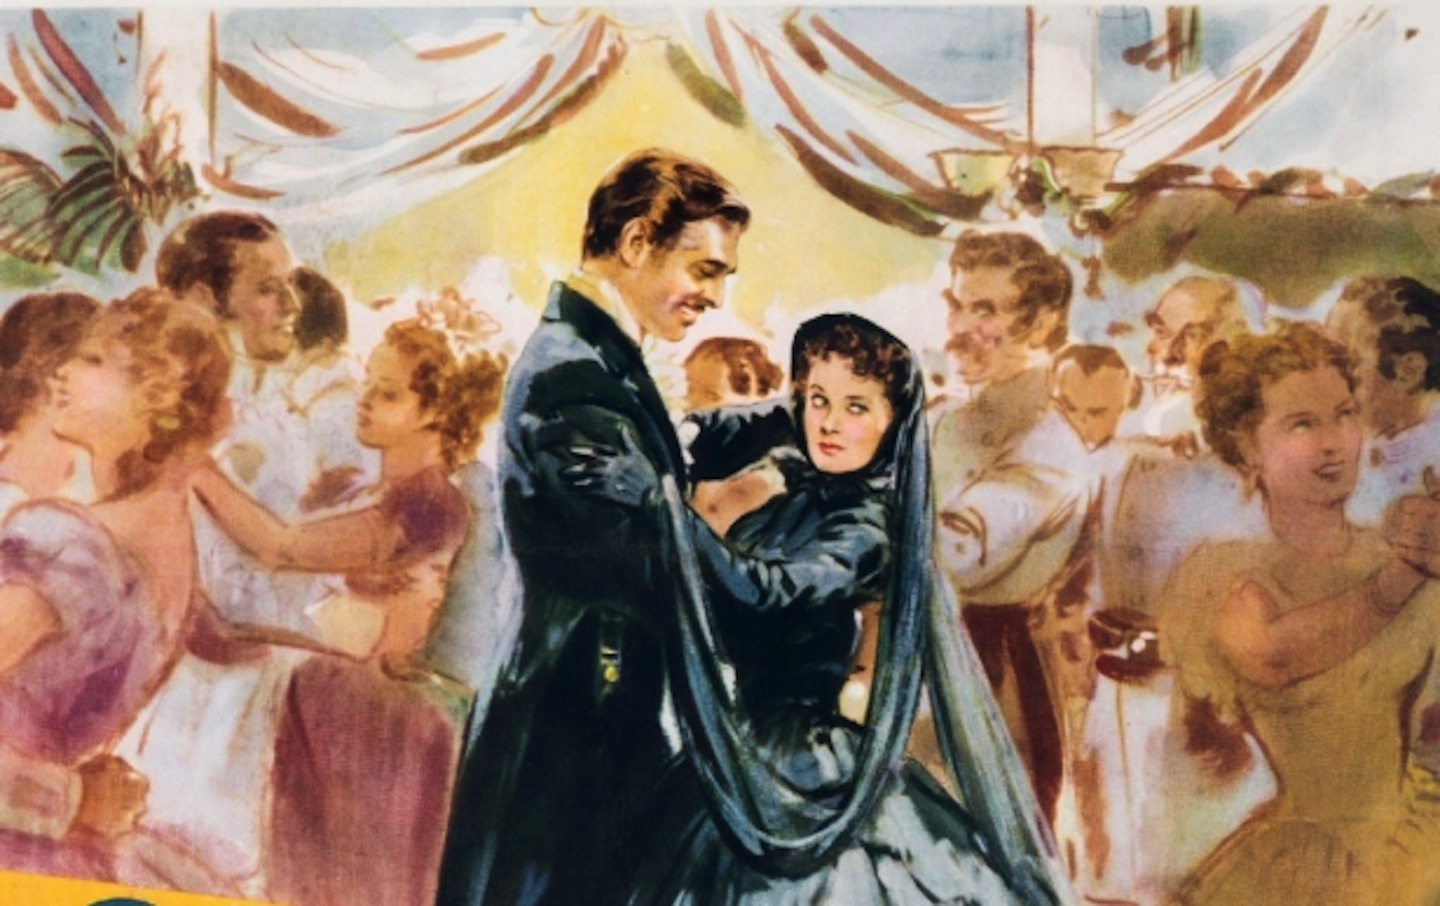 Is Gone With the Wind's nostalgia for slavery acceptable?